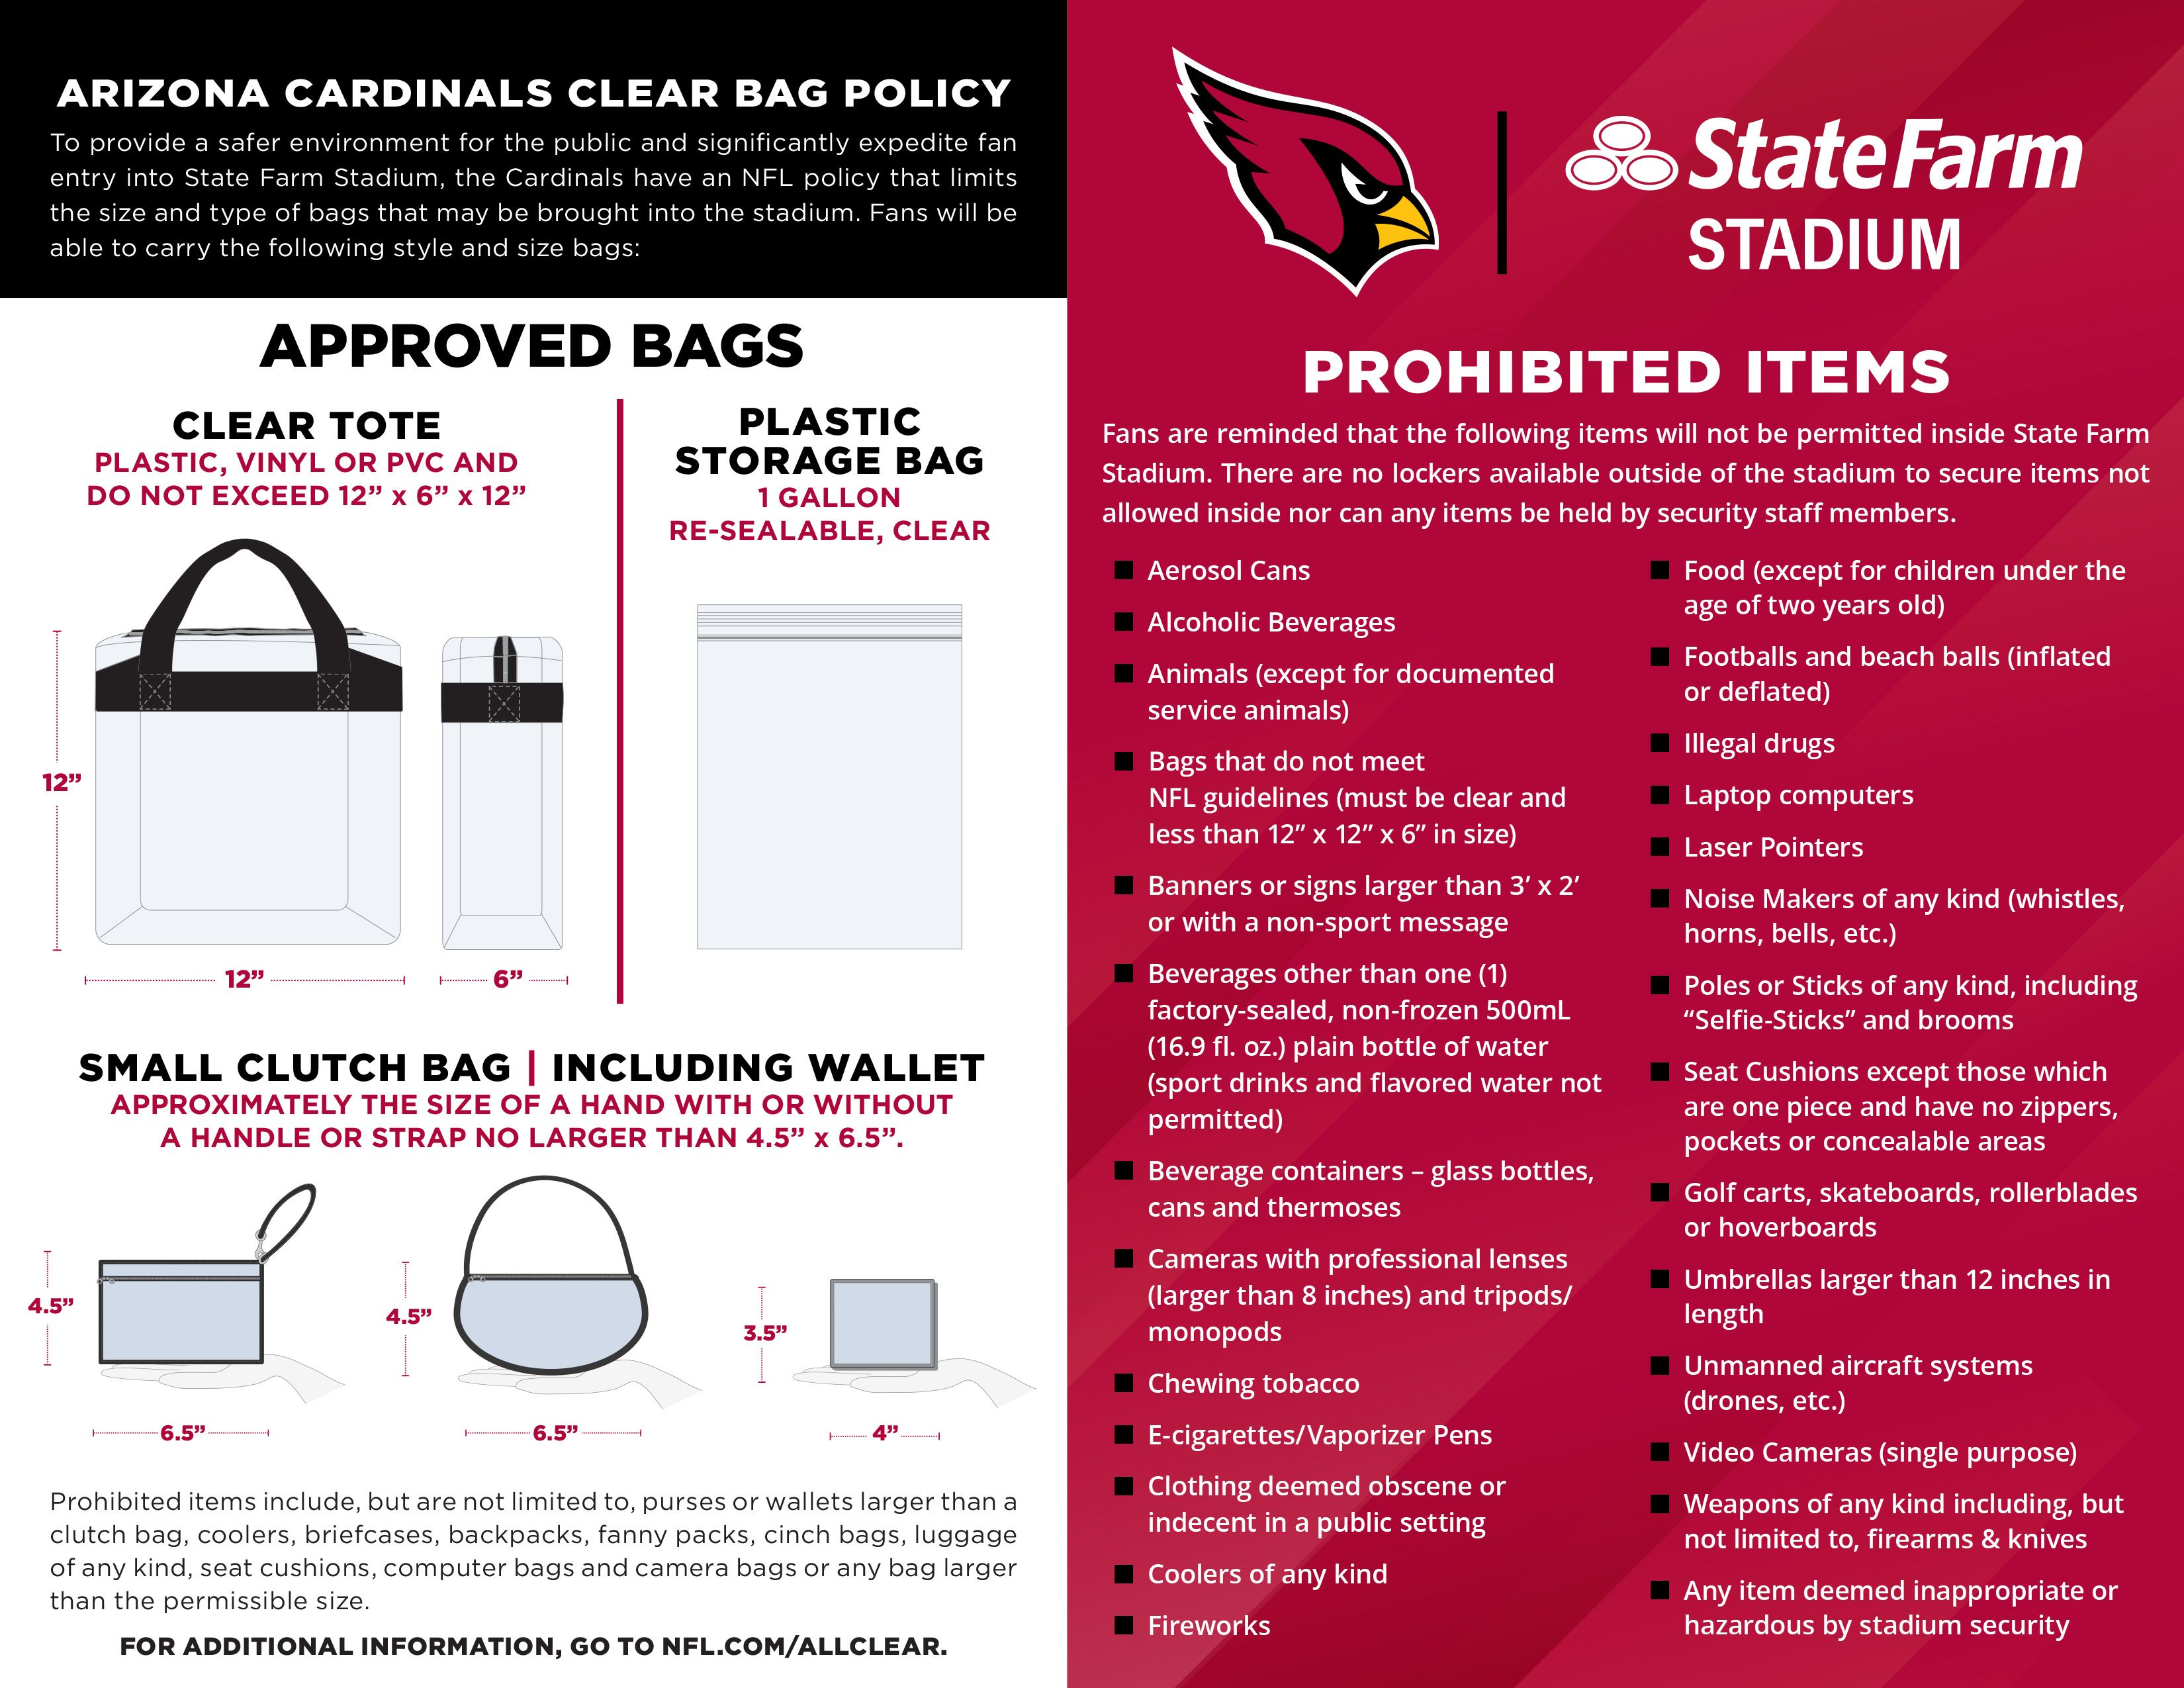 Arizona Cardinals Bag Policy and Prohibited Items List October 16, 2020